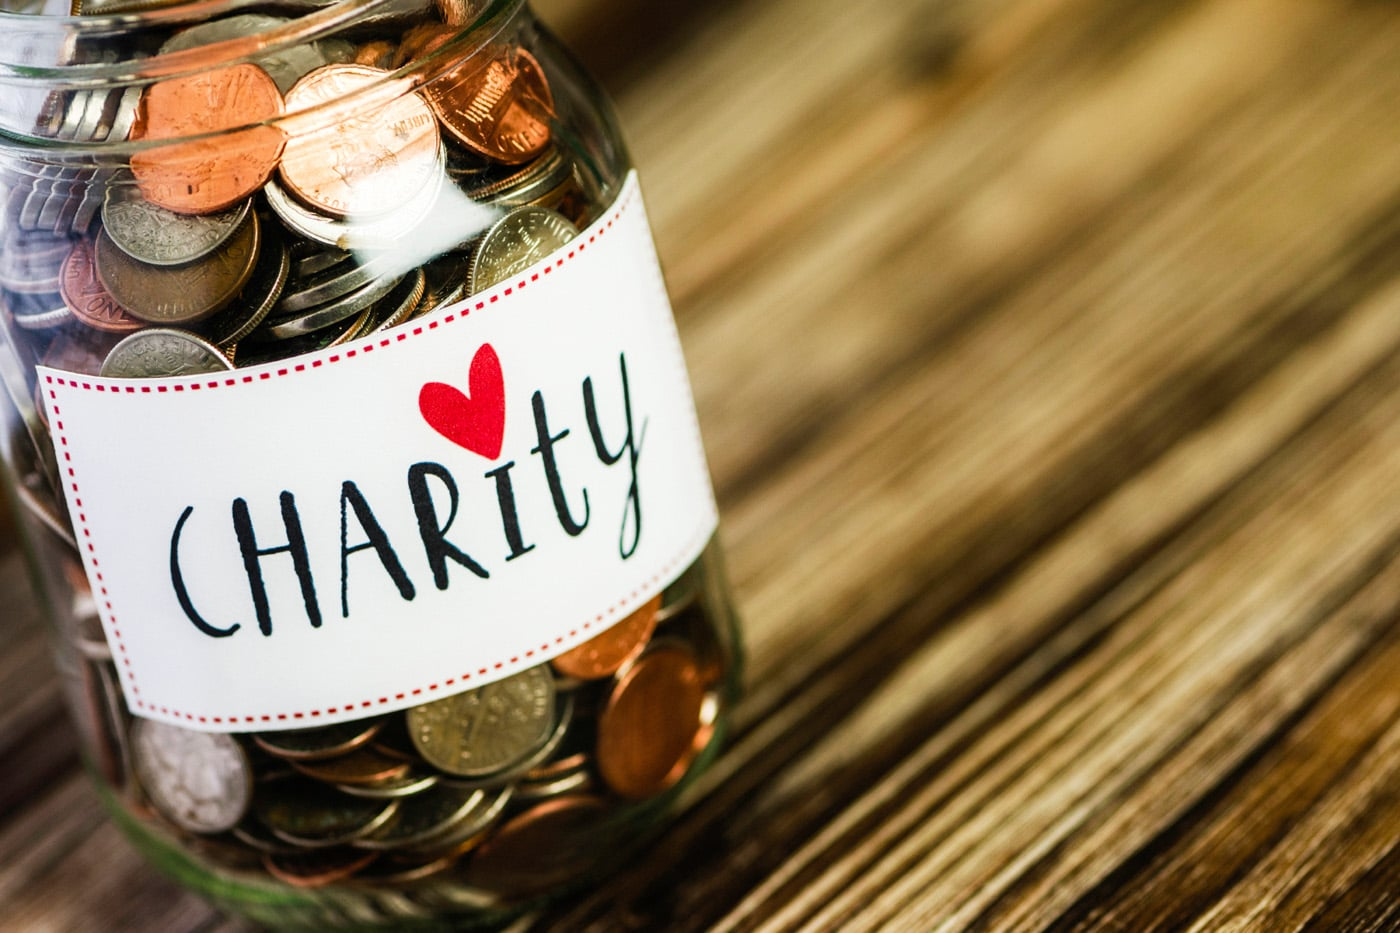 Charity coins